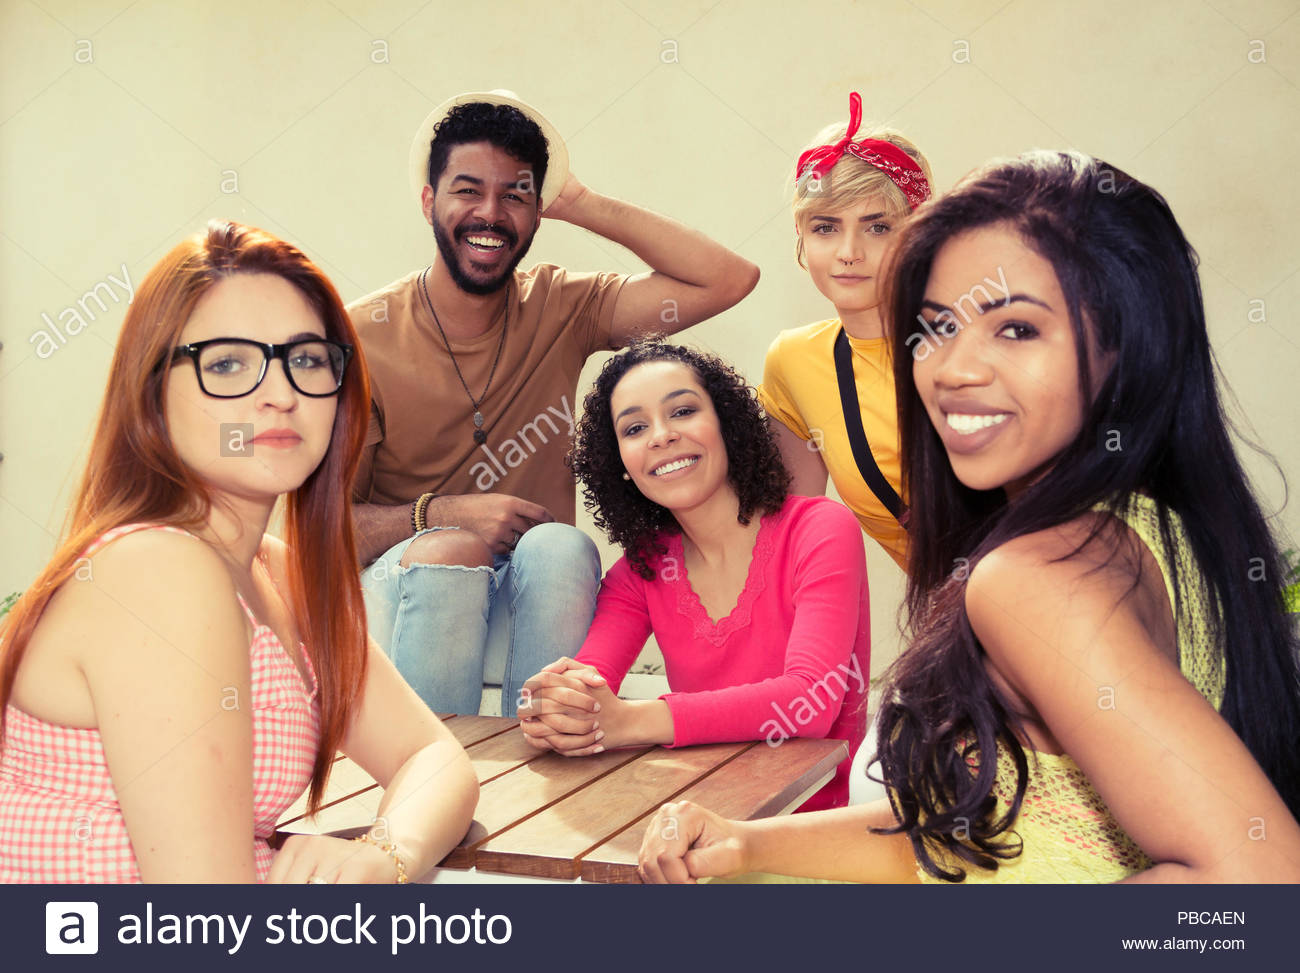 Portrait of Young adults having a great time at cafe bar outdoor. Multicultural students bonding at restaurant outside. Summer, warm, friendship, dive - Stock Image